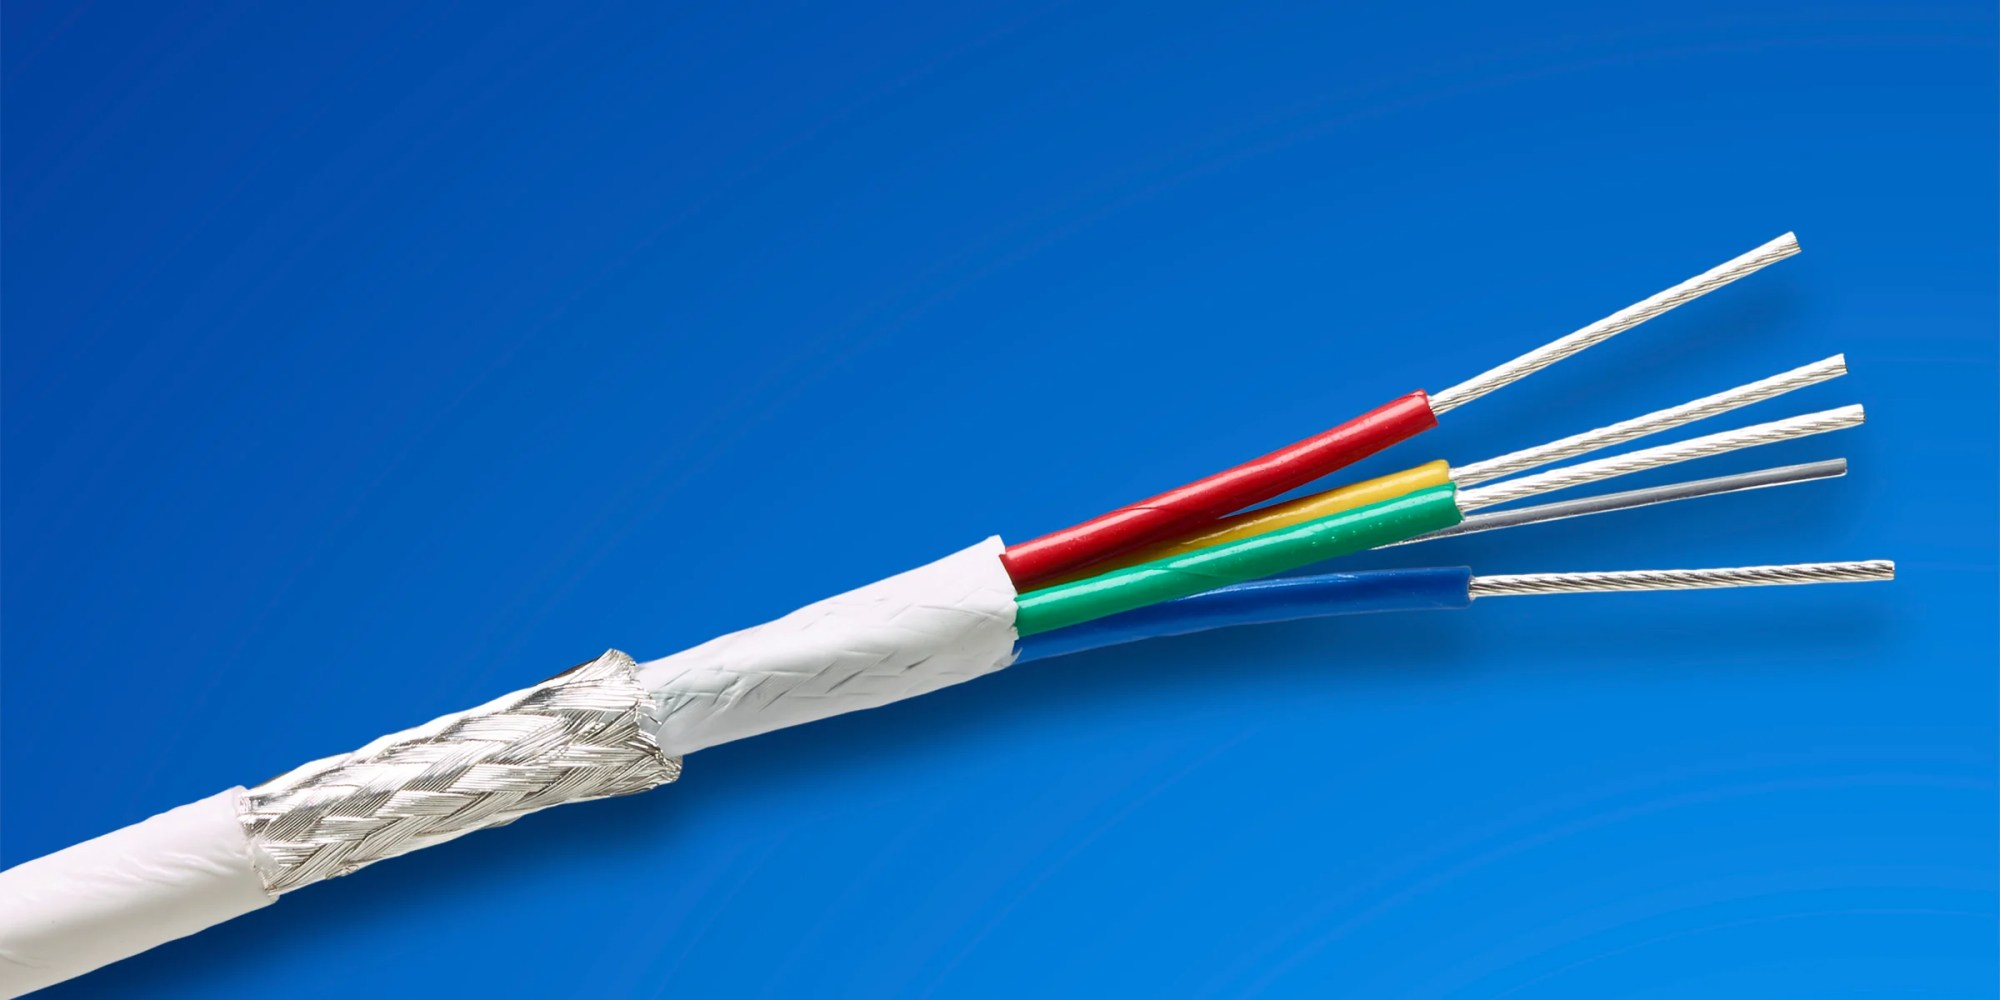 hight resolution of these cables also have a high density design that is substantially smaller and lighter weight without sacrificing durability or signal quality